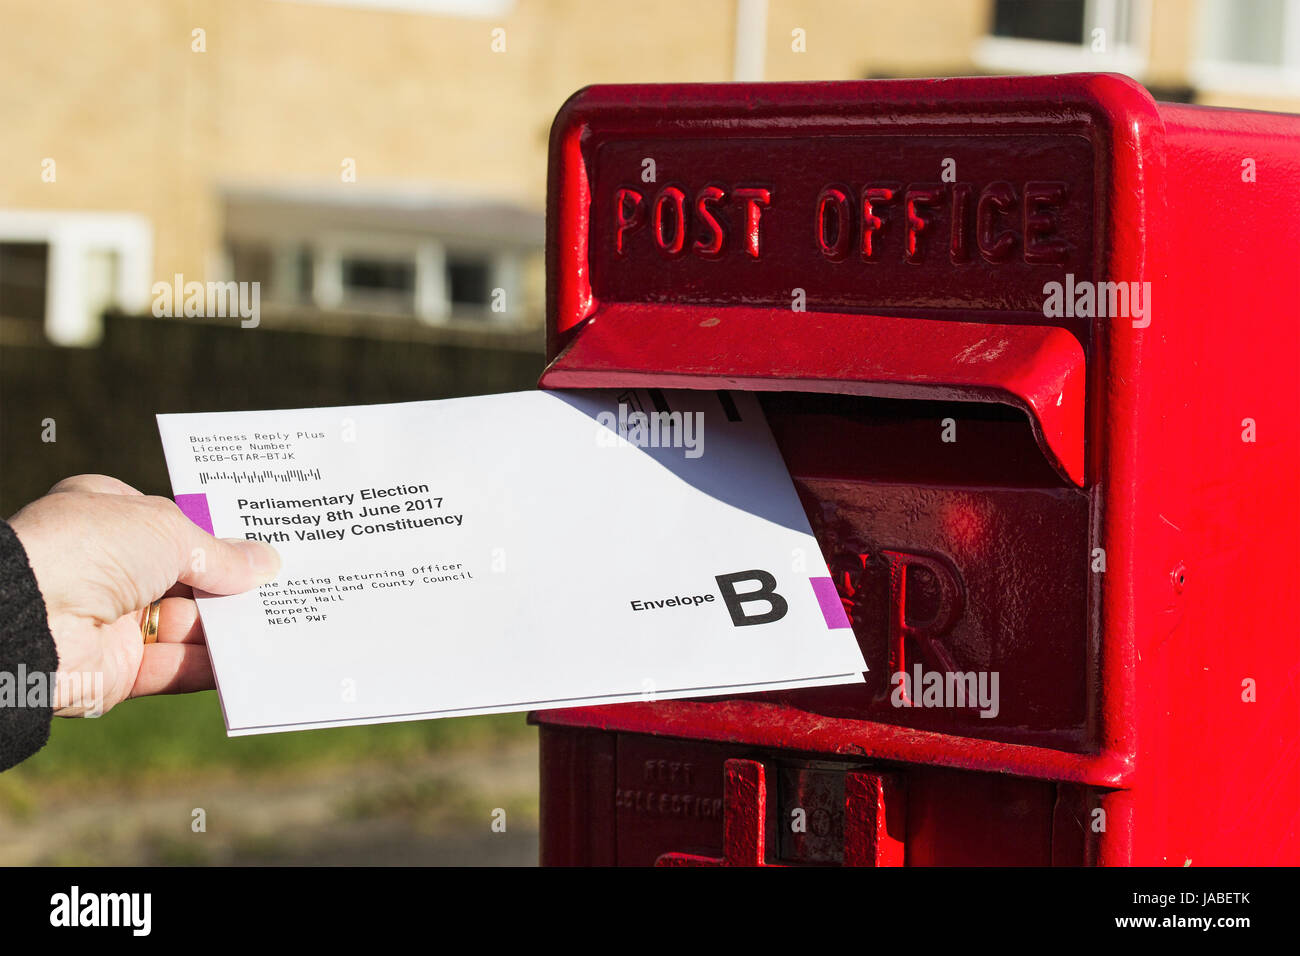 Postal voting for the 08 June 2017 UK election - Stock Image